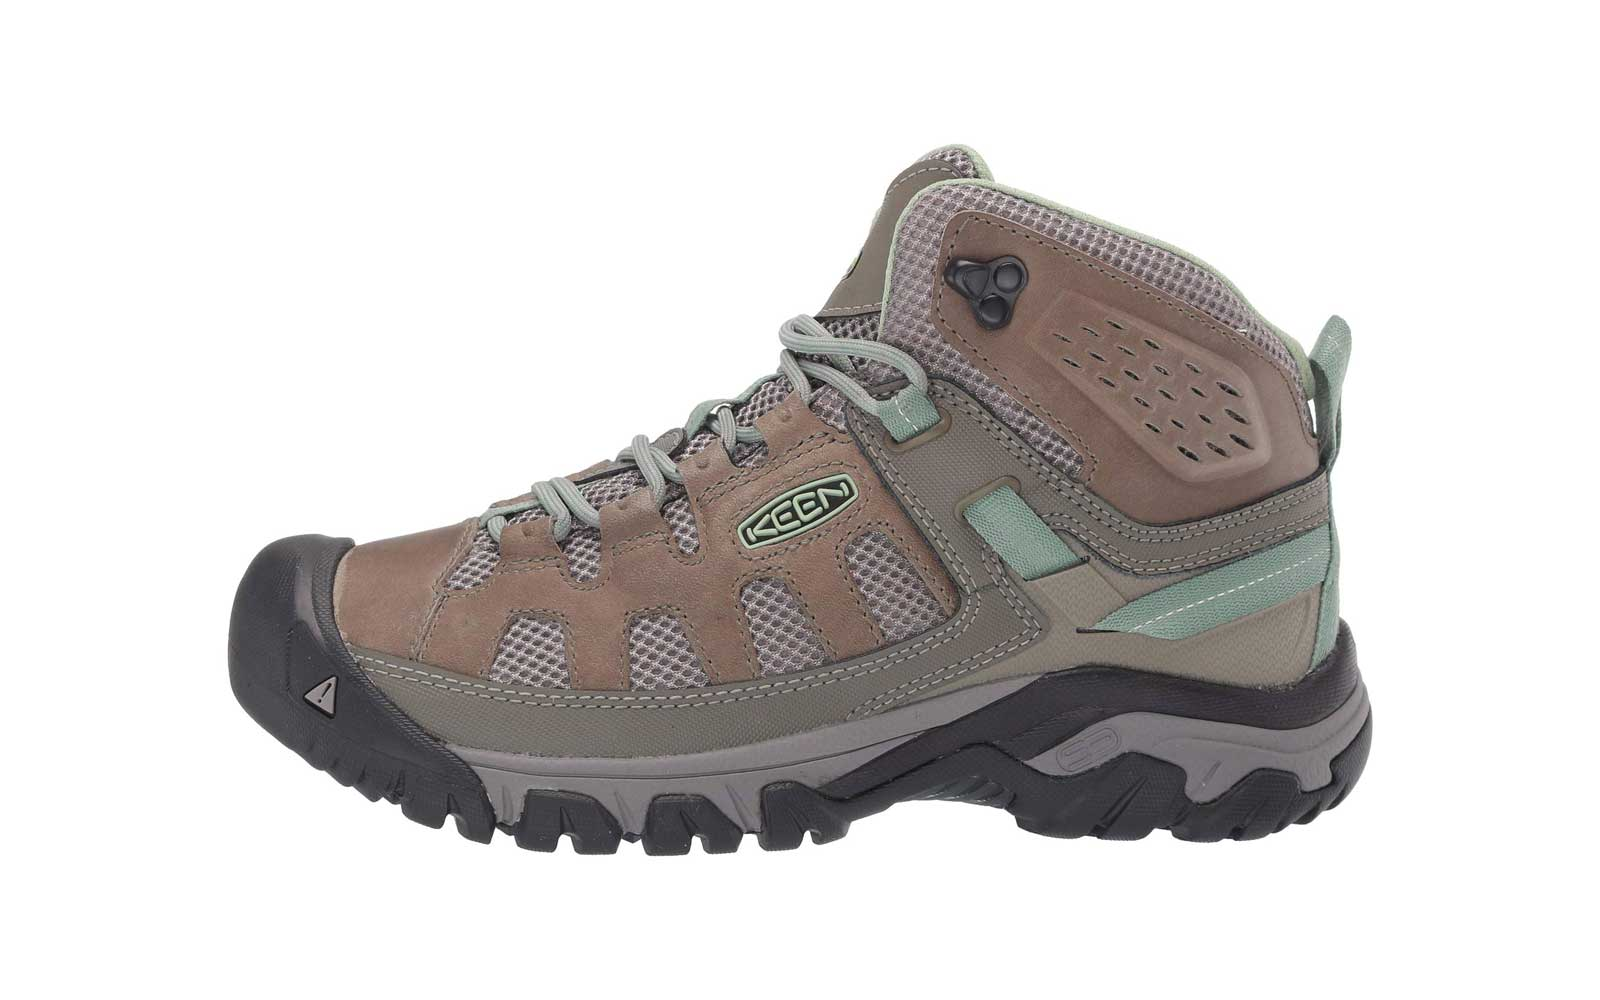 The 20 Best Hiking Shoes and Boots for Women in 2019